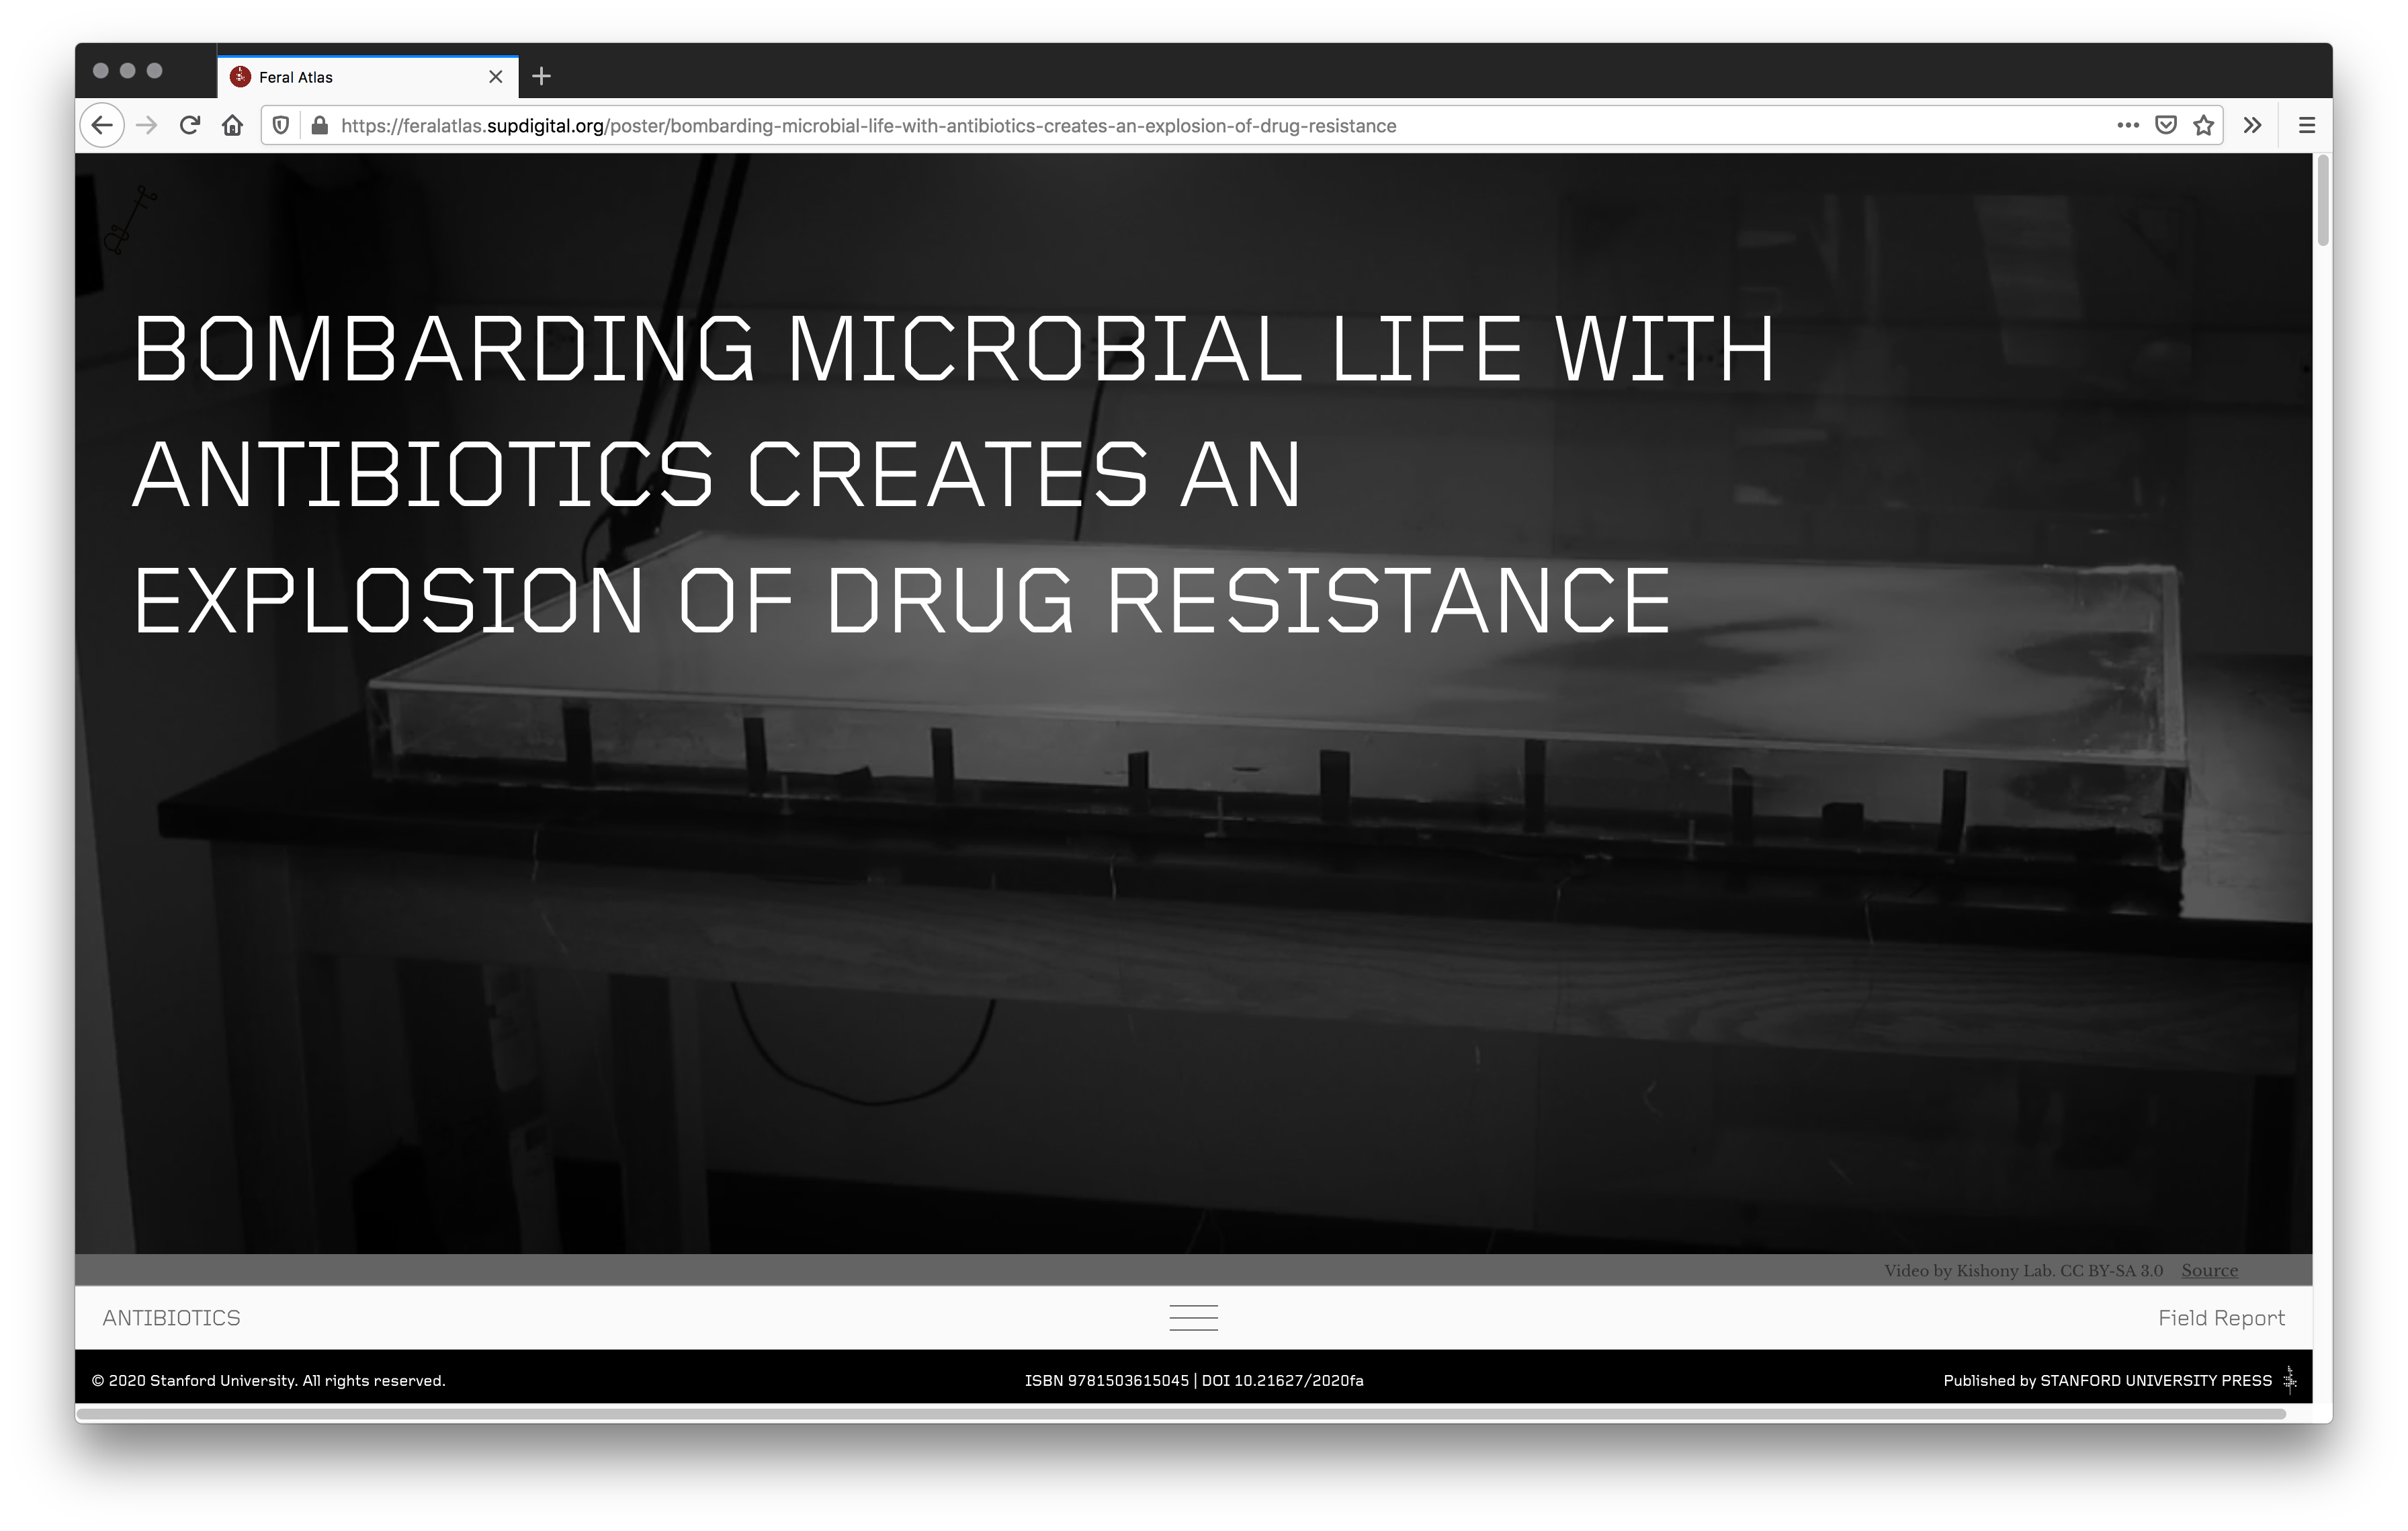 """This screenshot from Feral Atlas' Field Report on antibiotics reads """"BOMBARDING MICROBIAL LIFE WITH ANTIBIOTICS CREATES AN EXPLOSION OF DRUG RESISTANCE""""."""